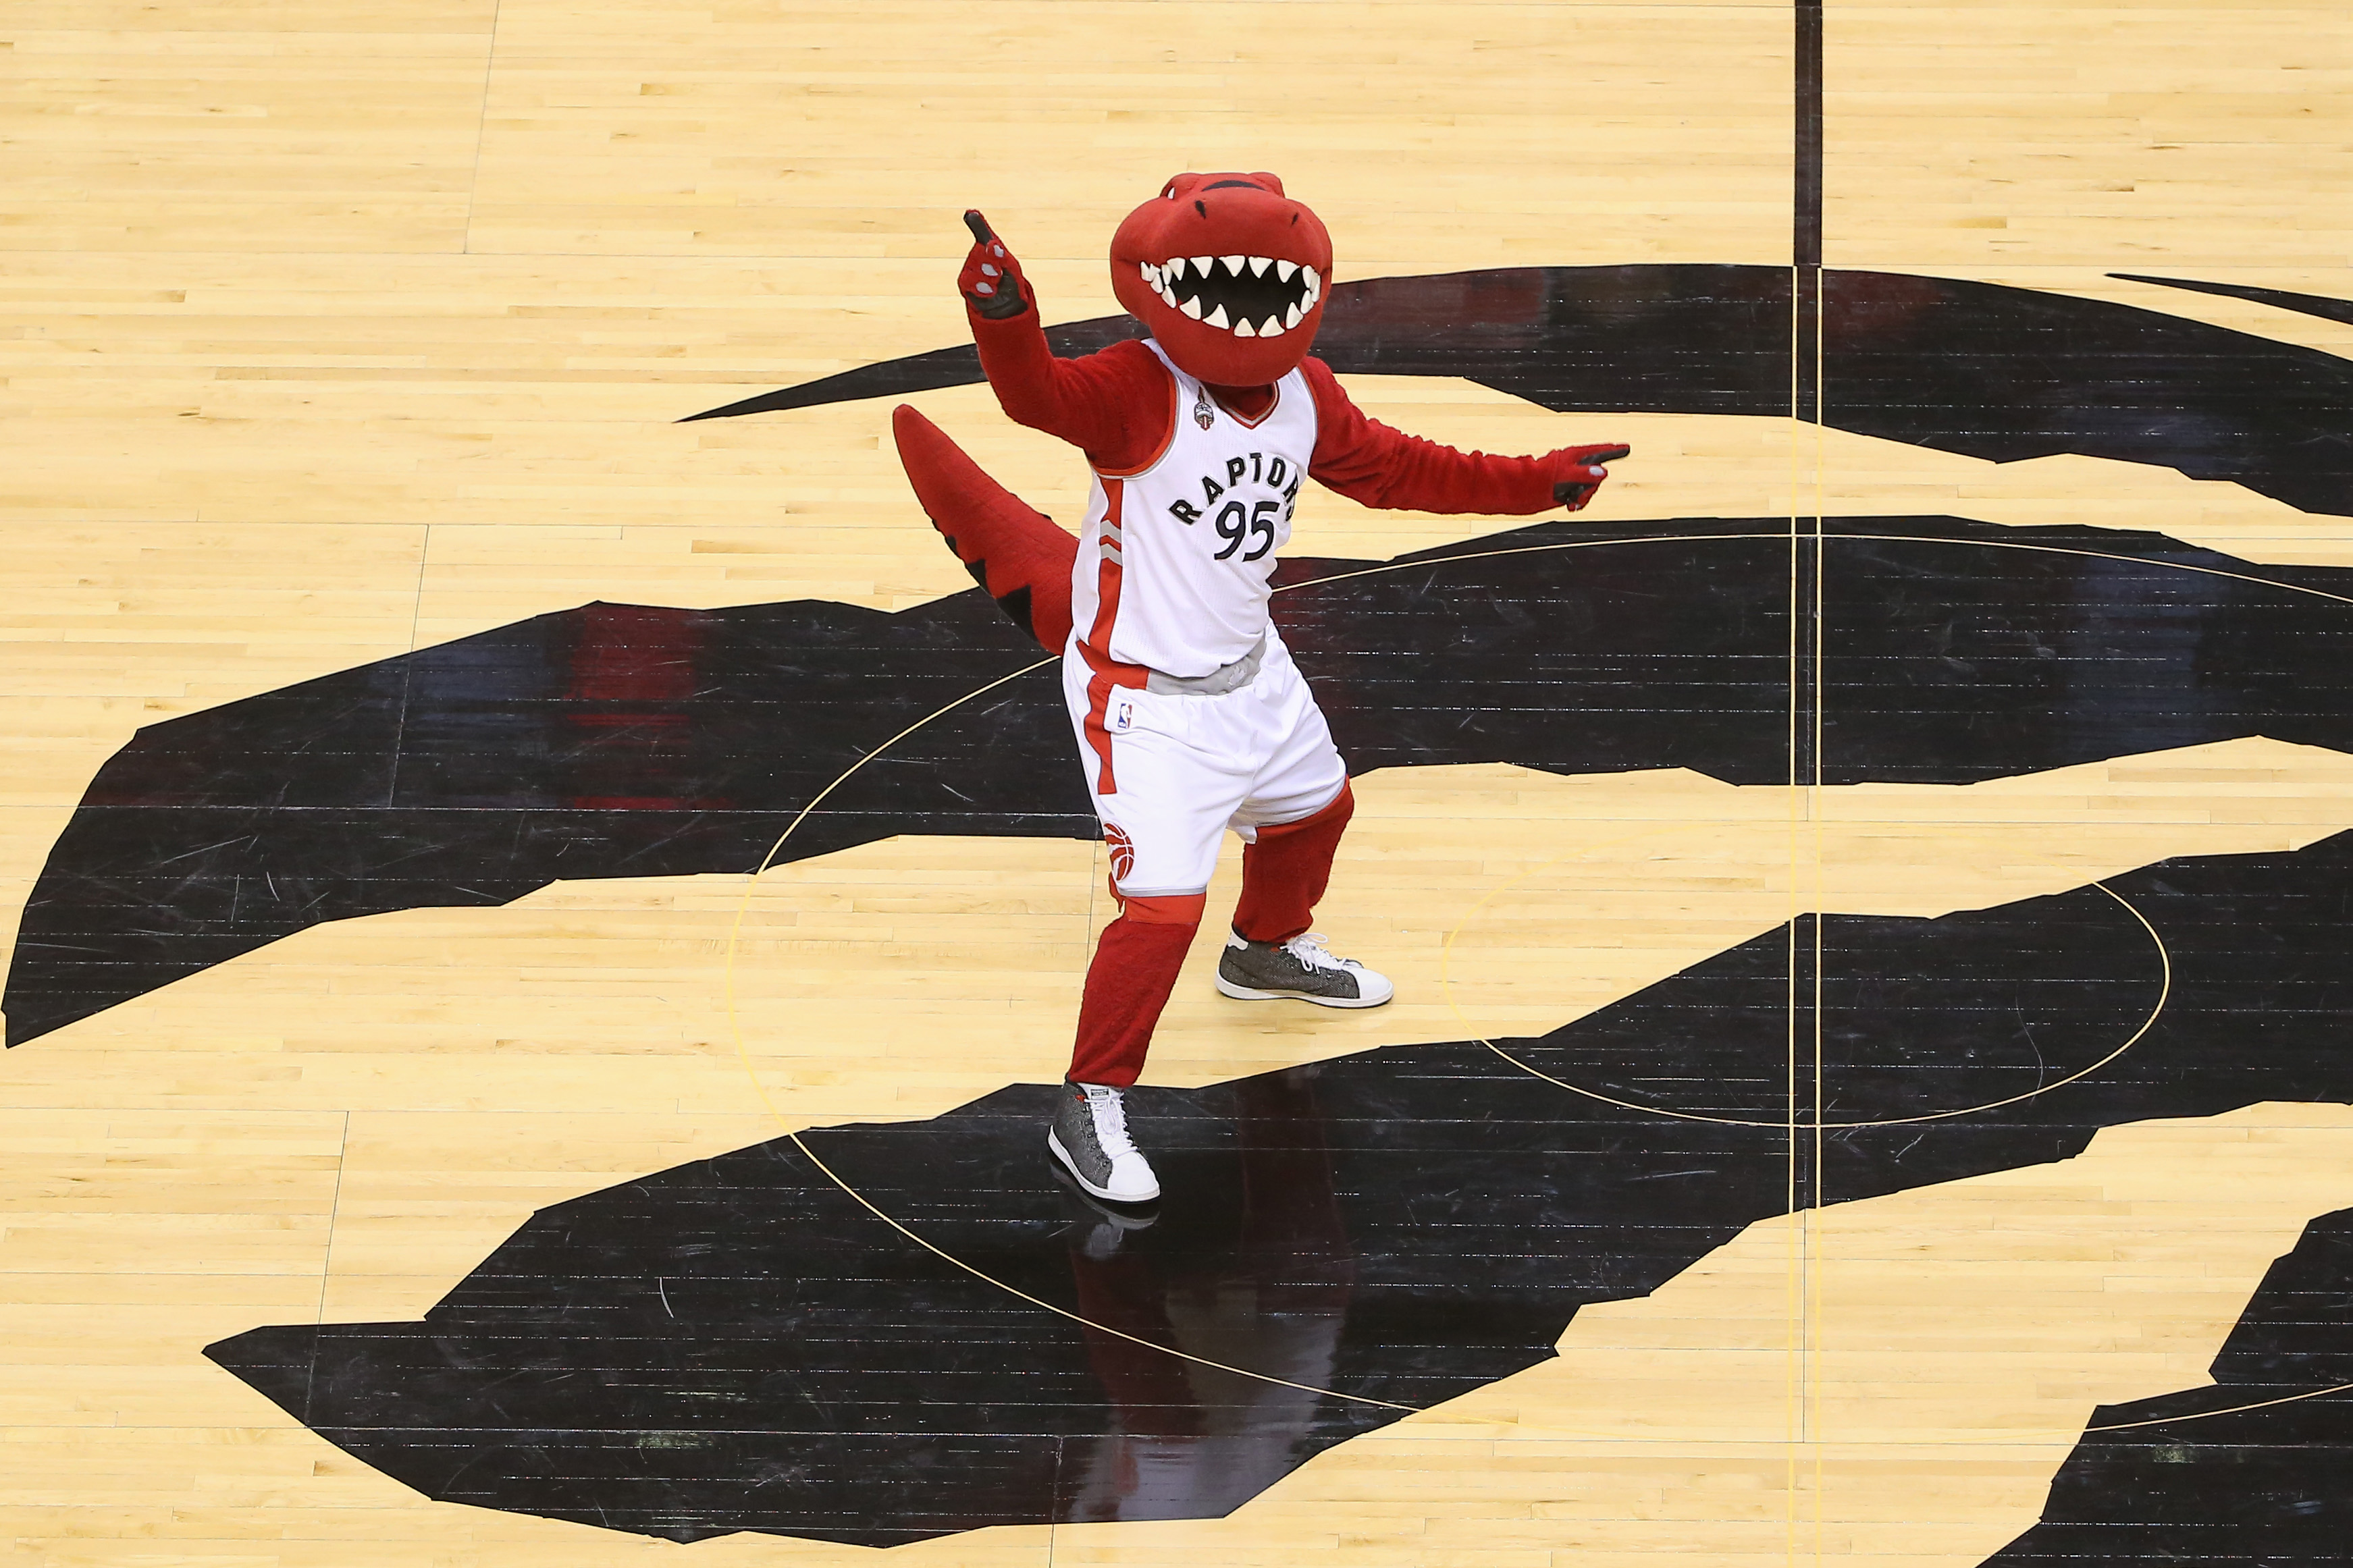 The Toronto Raptors NBA mascot standing on the court before a game